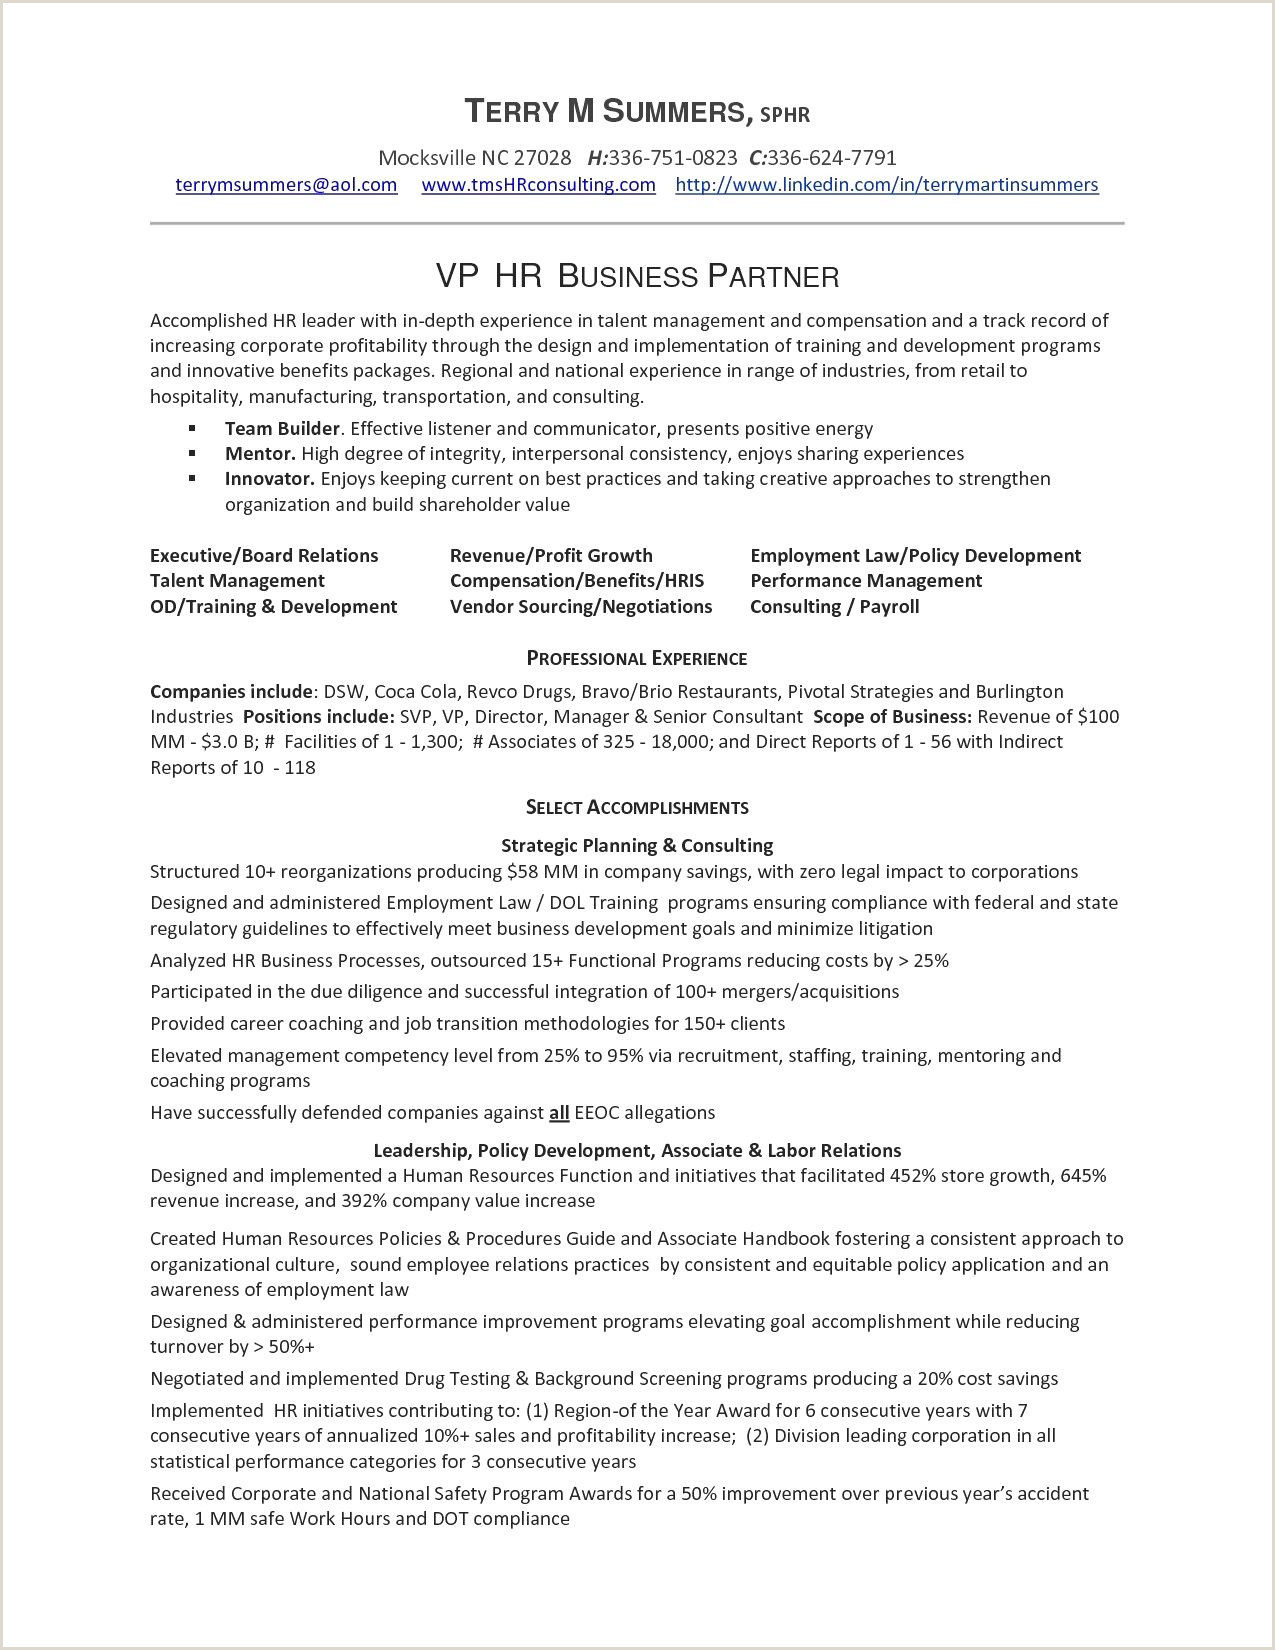 Resume Sample for Call Center Agent without Experience 80 Unique Image Resume Samples for Call Center Agents for